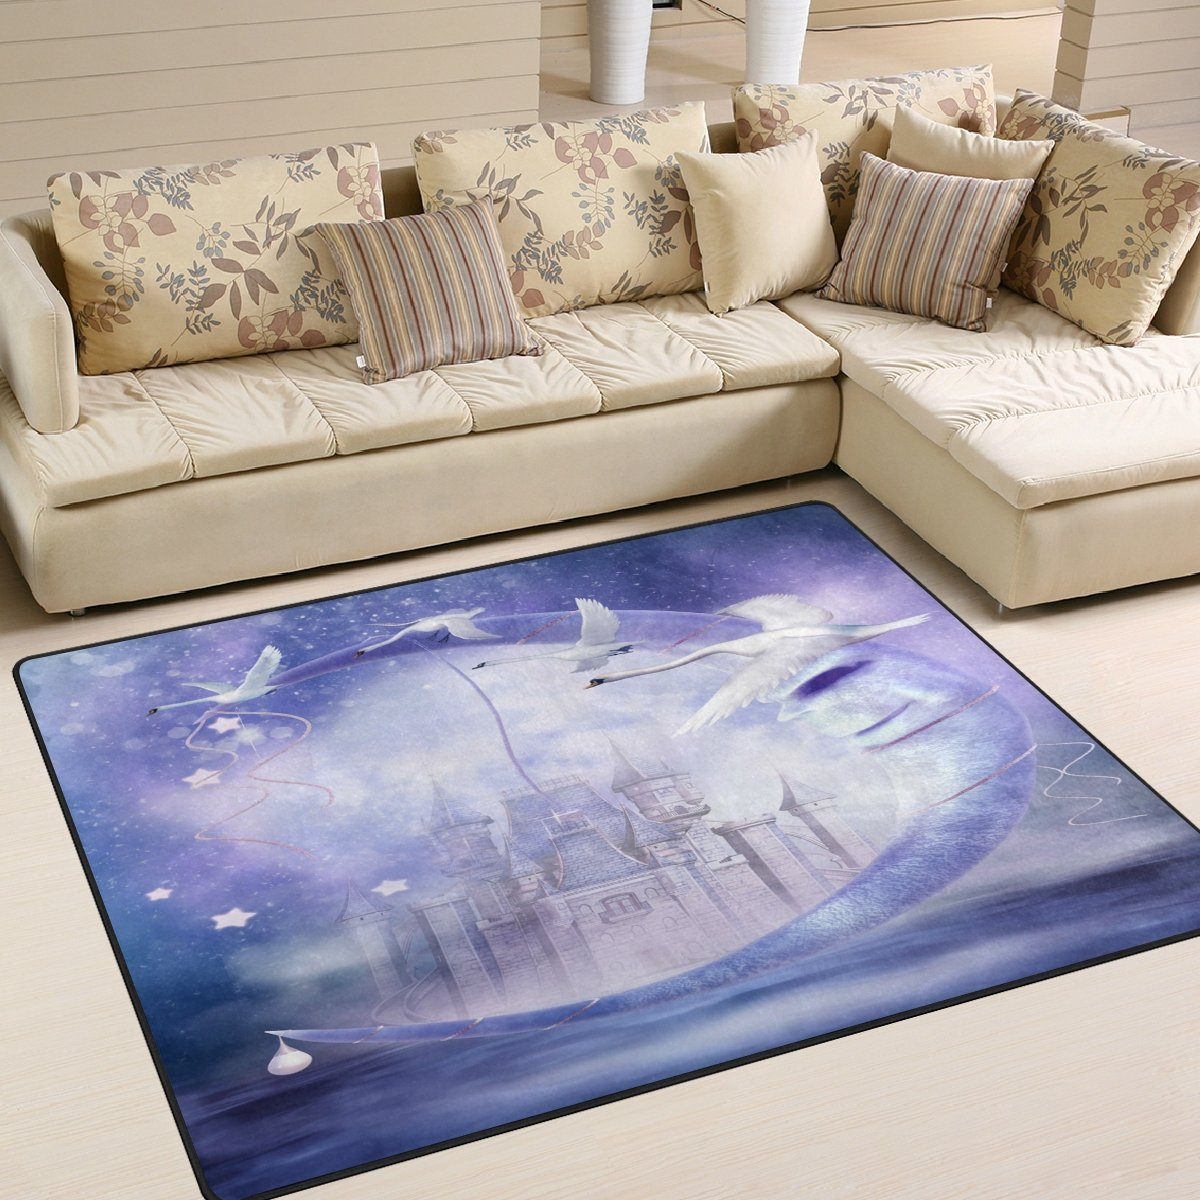 Amazon.com: ALAZA Fairytale Moon with Castle and White Swan ...